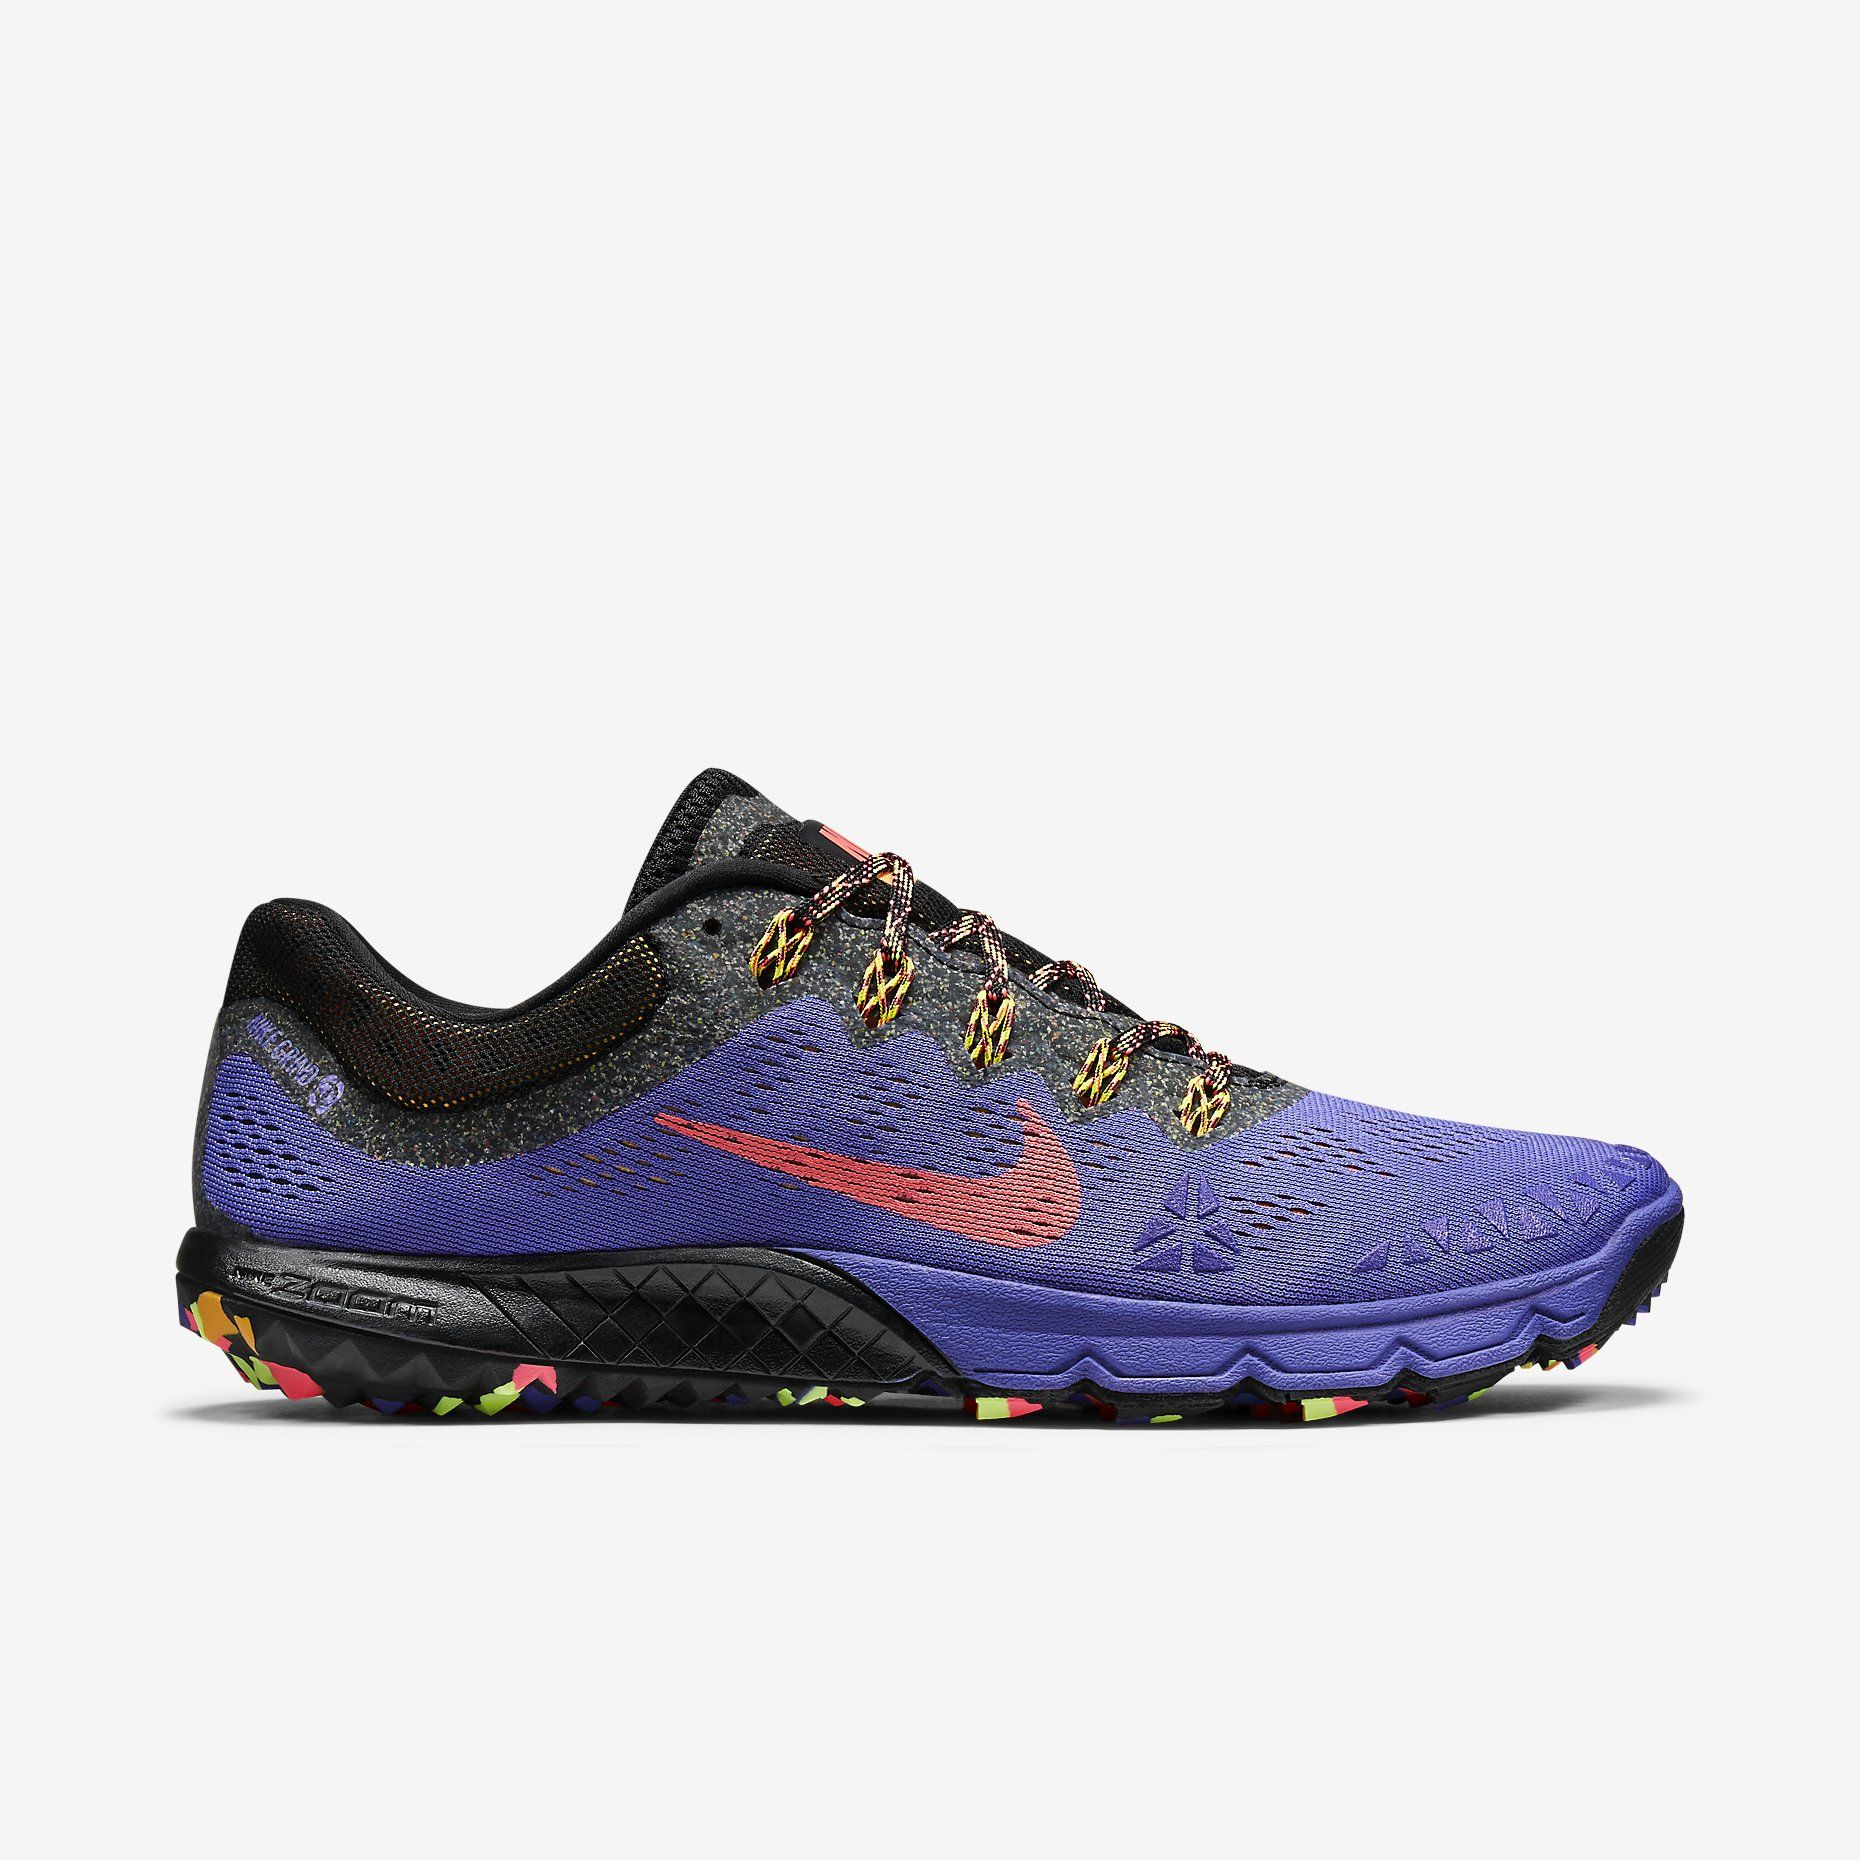 Nike Zoom Vomero 9 (642195-403) | Running Shoes [Men's] | Pinterest | Nike  zoom and Running shoes